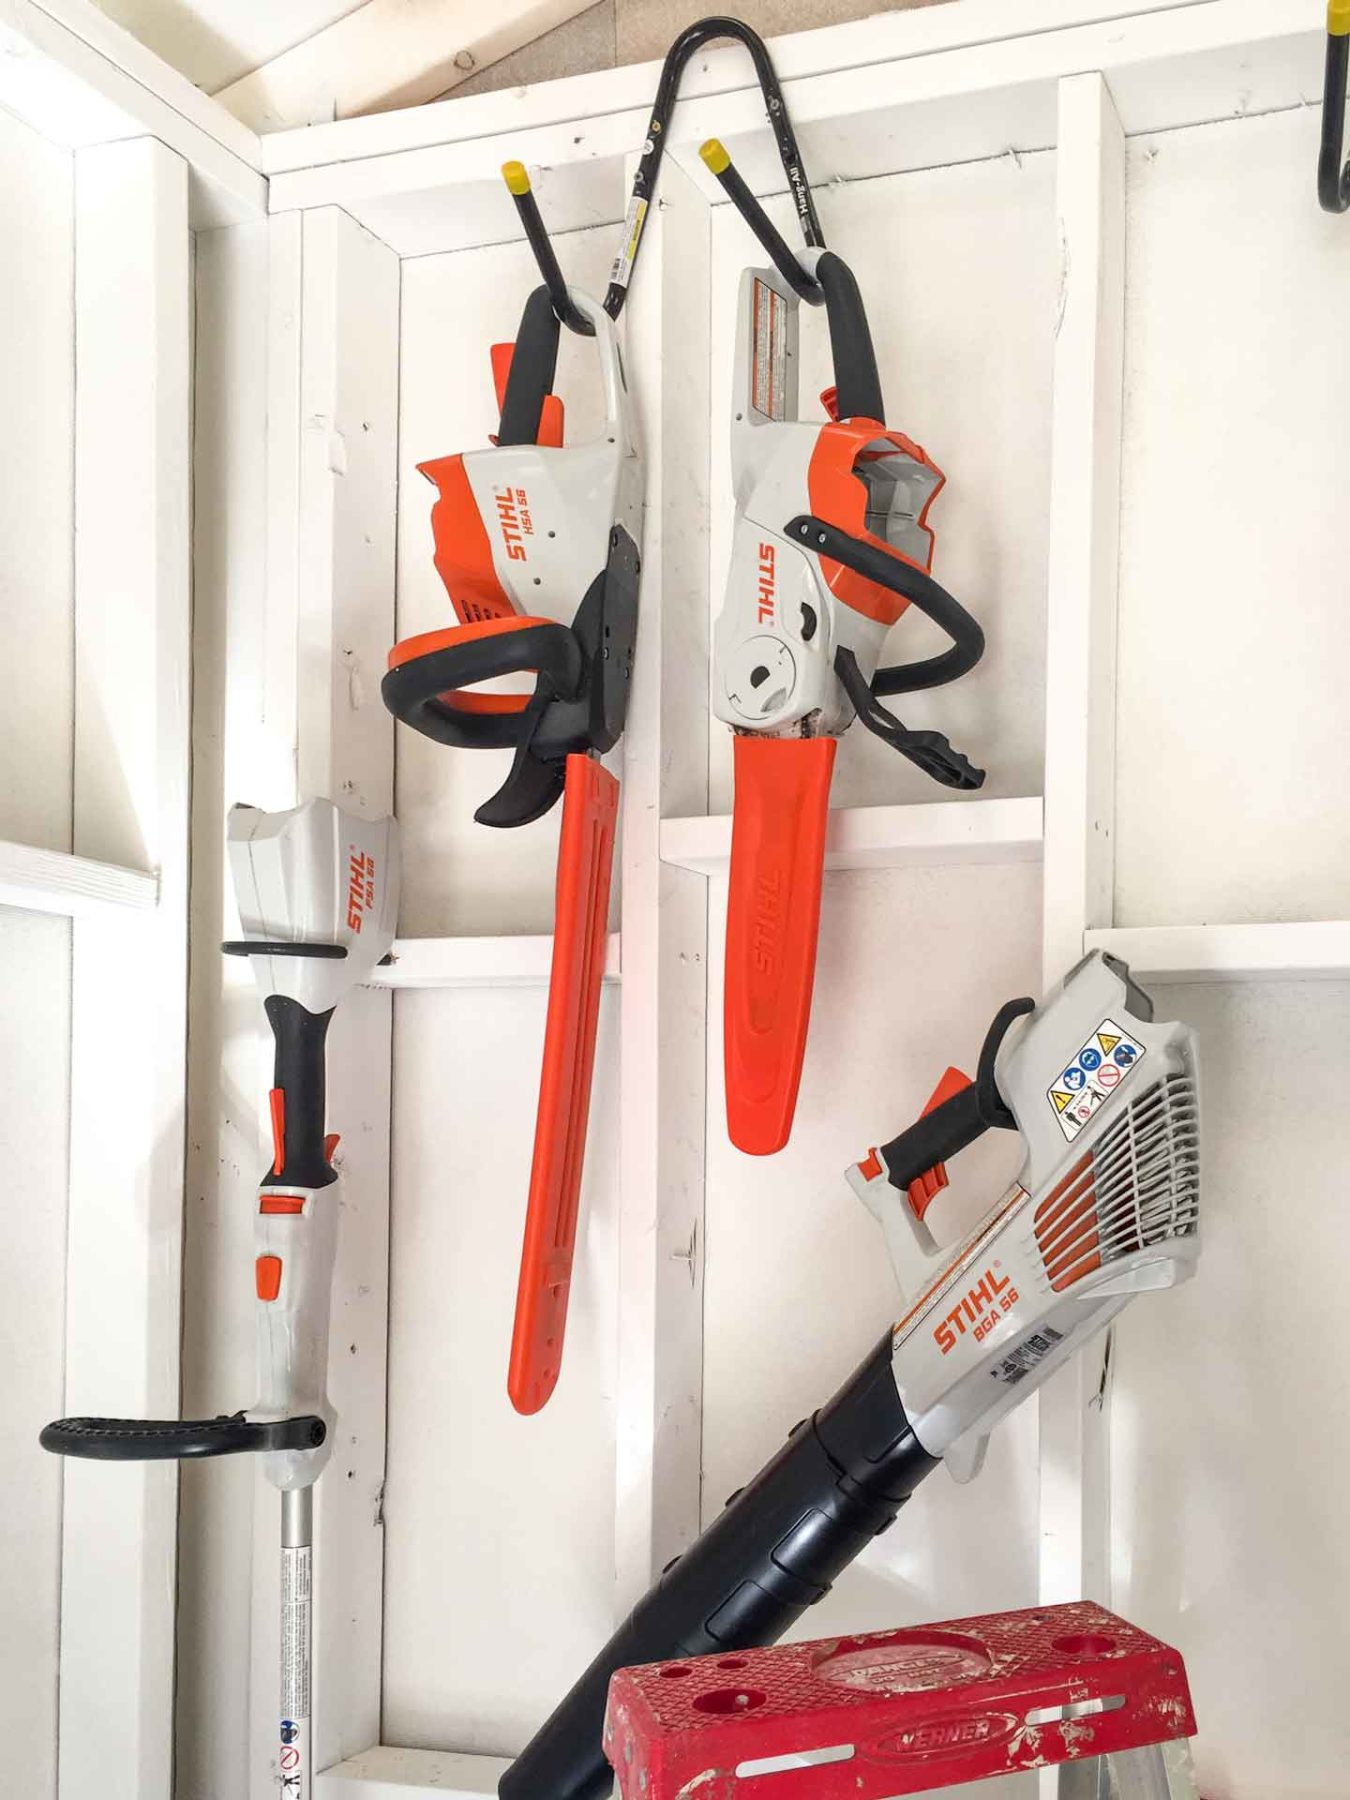 STIHL-battery-powered-tools-hanging-in-pub-shed